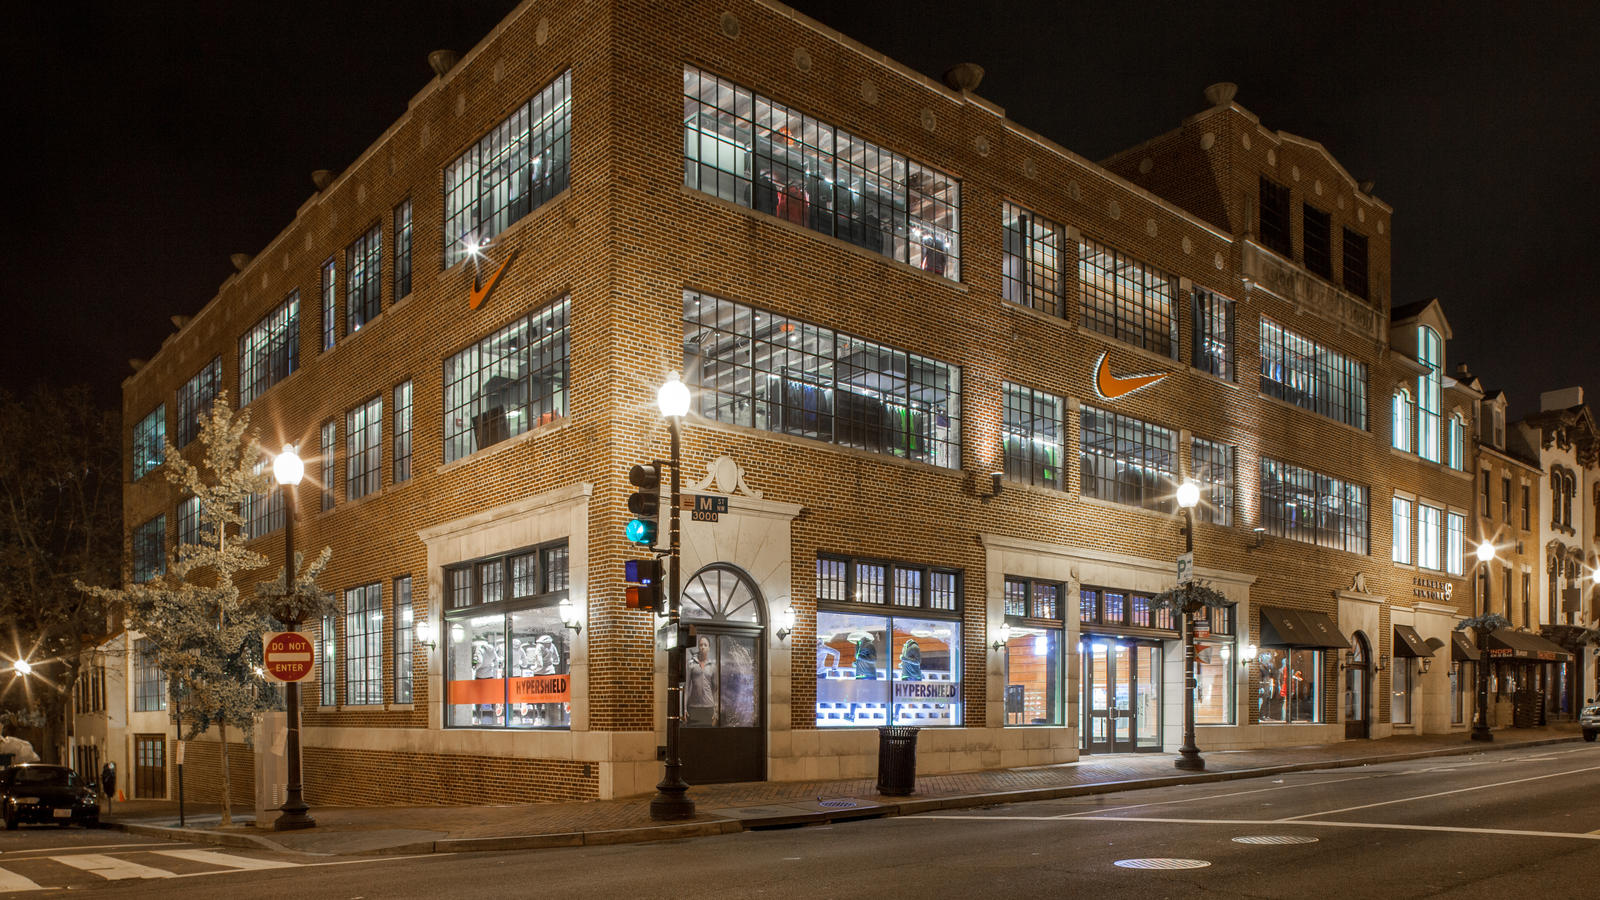 Nike georgetown opens in washington dc nike news for Buy house in dc